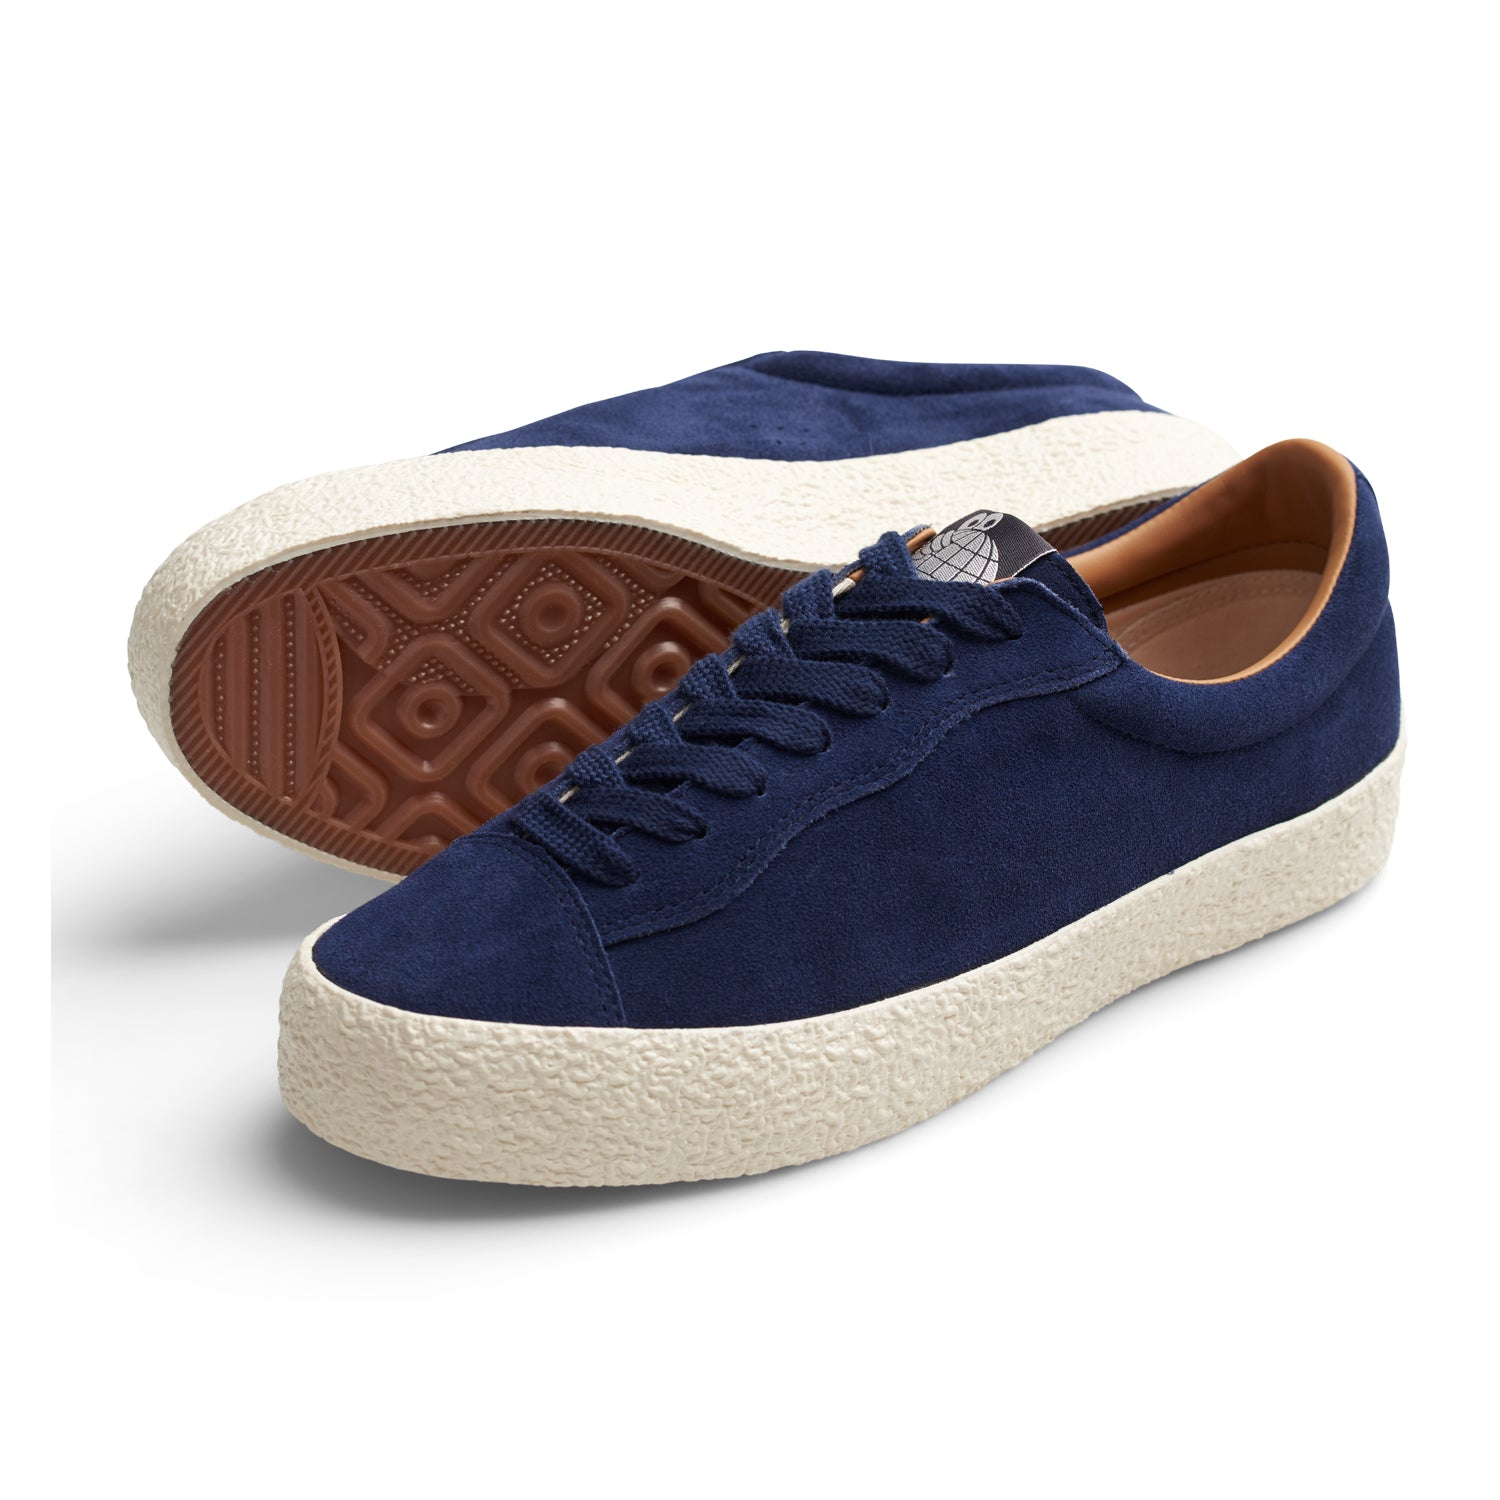 Last Resort AB VM002 Suede Lo Deep Blue/White